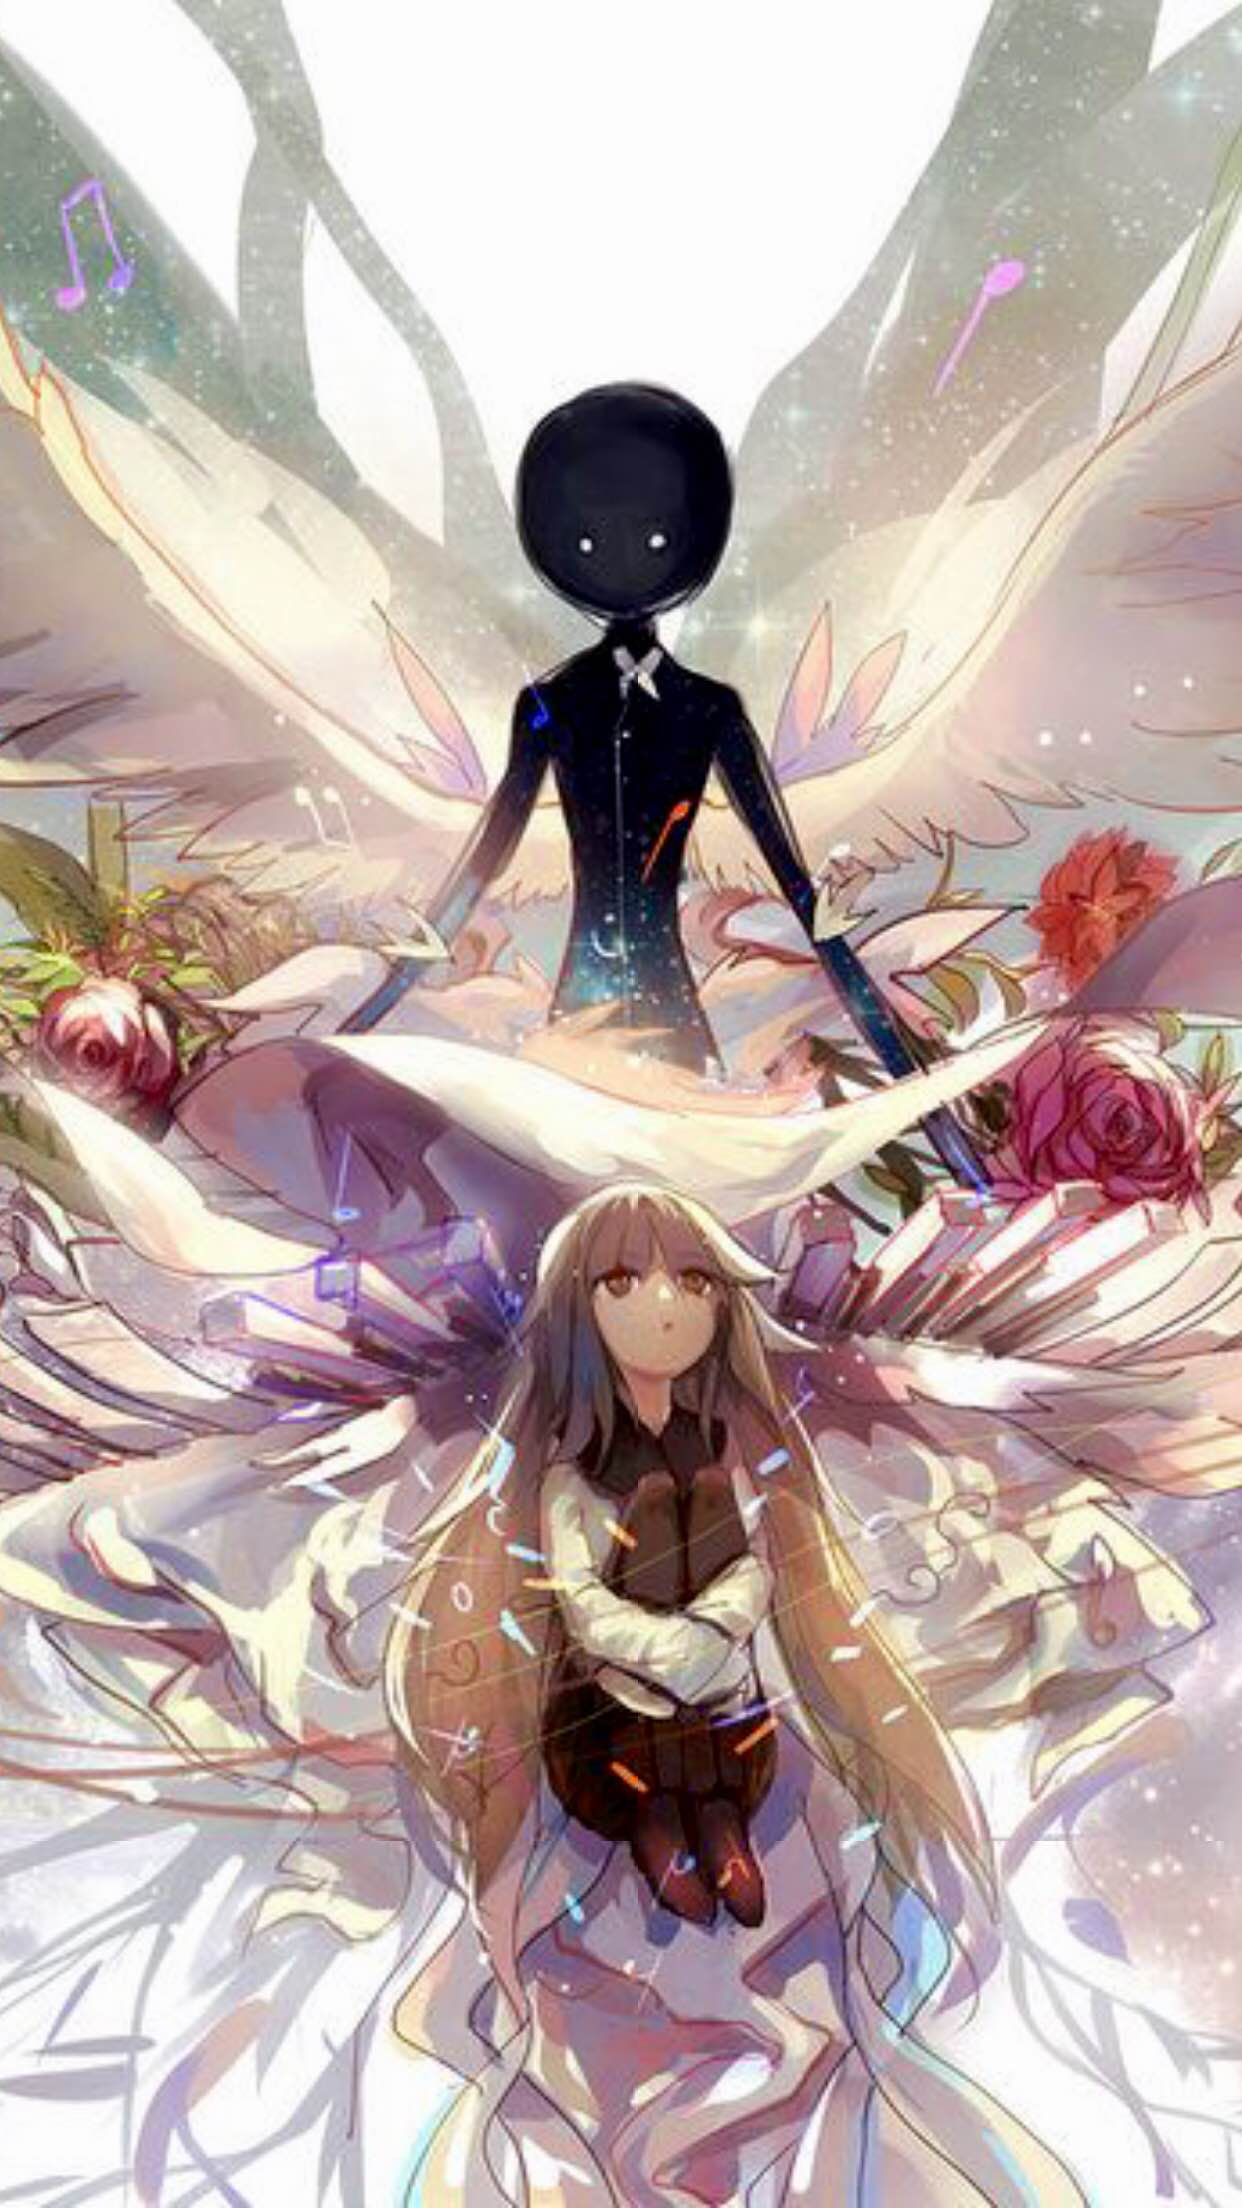 Emo Girl Wallpaper Free Download Deemo Angel Wallpaper For Iphone X 8 7 6 Free